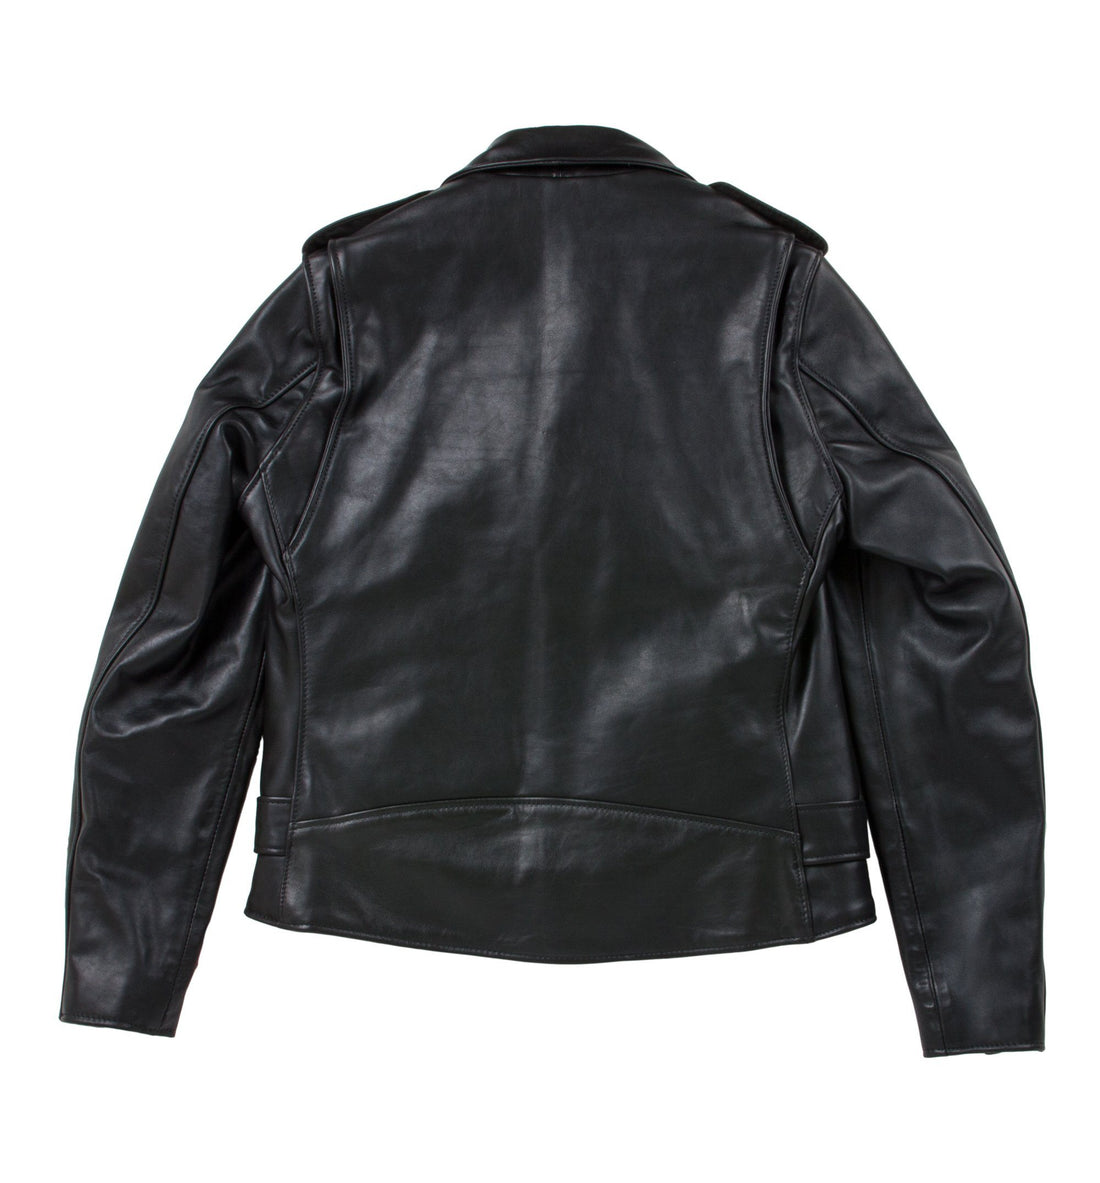 Schott Women's Leather Motorcycle Jacket - Outerwear - Iron and Resin